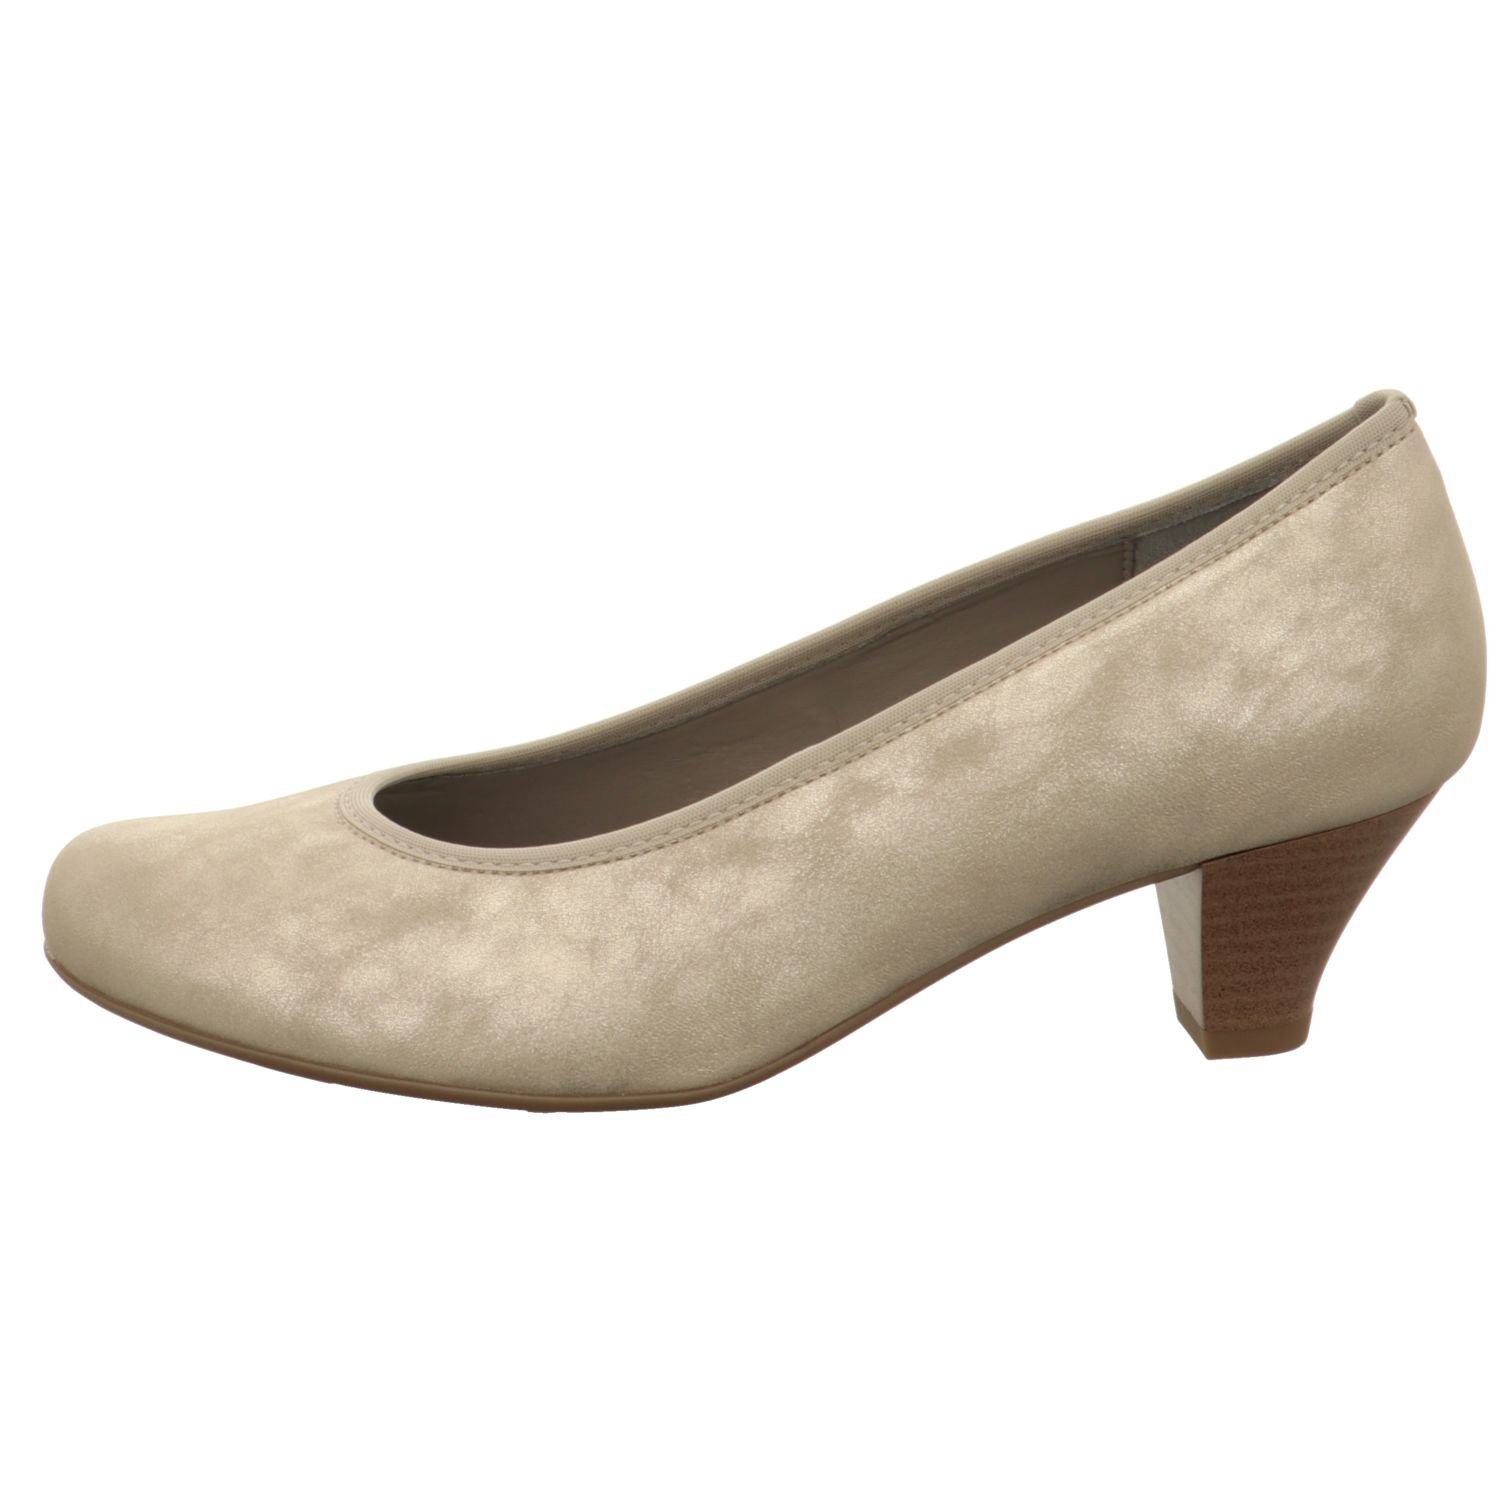 JENNY by ARA Damen Pumps LUFTPOLSTERSOHLE Weite G gold